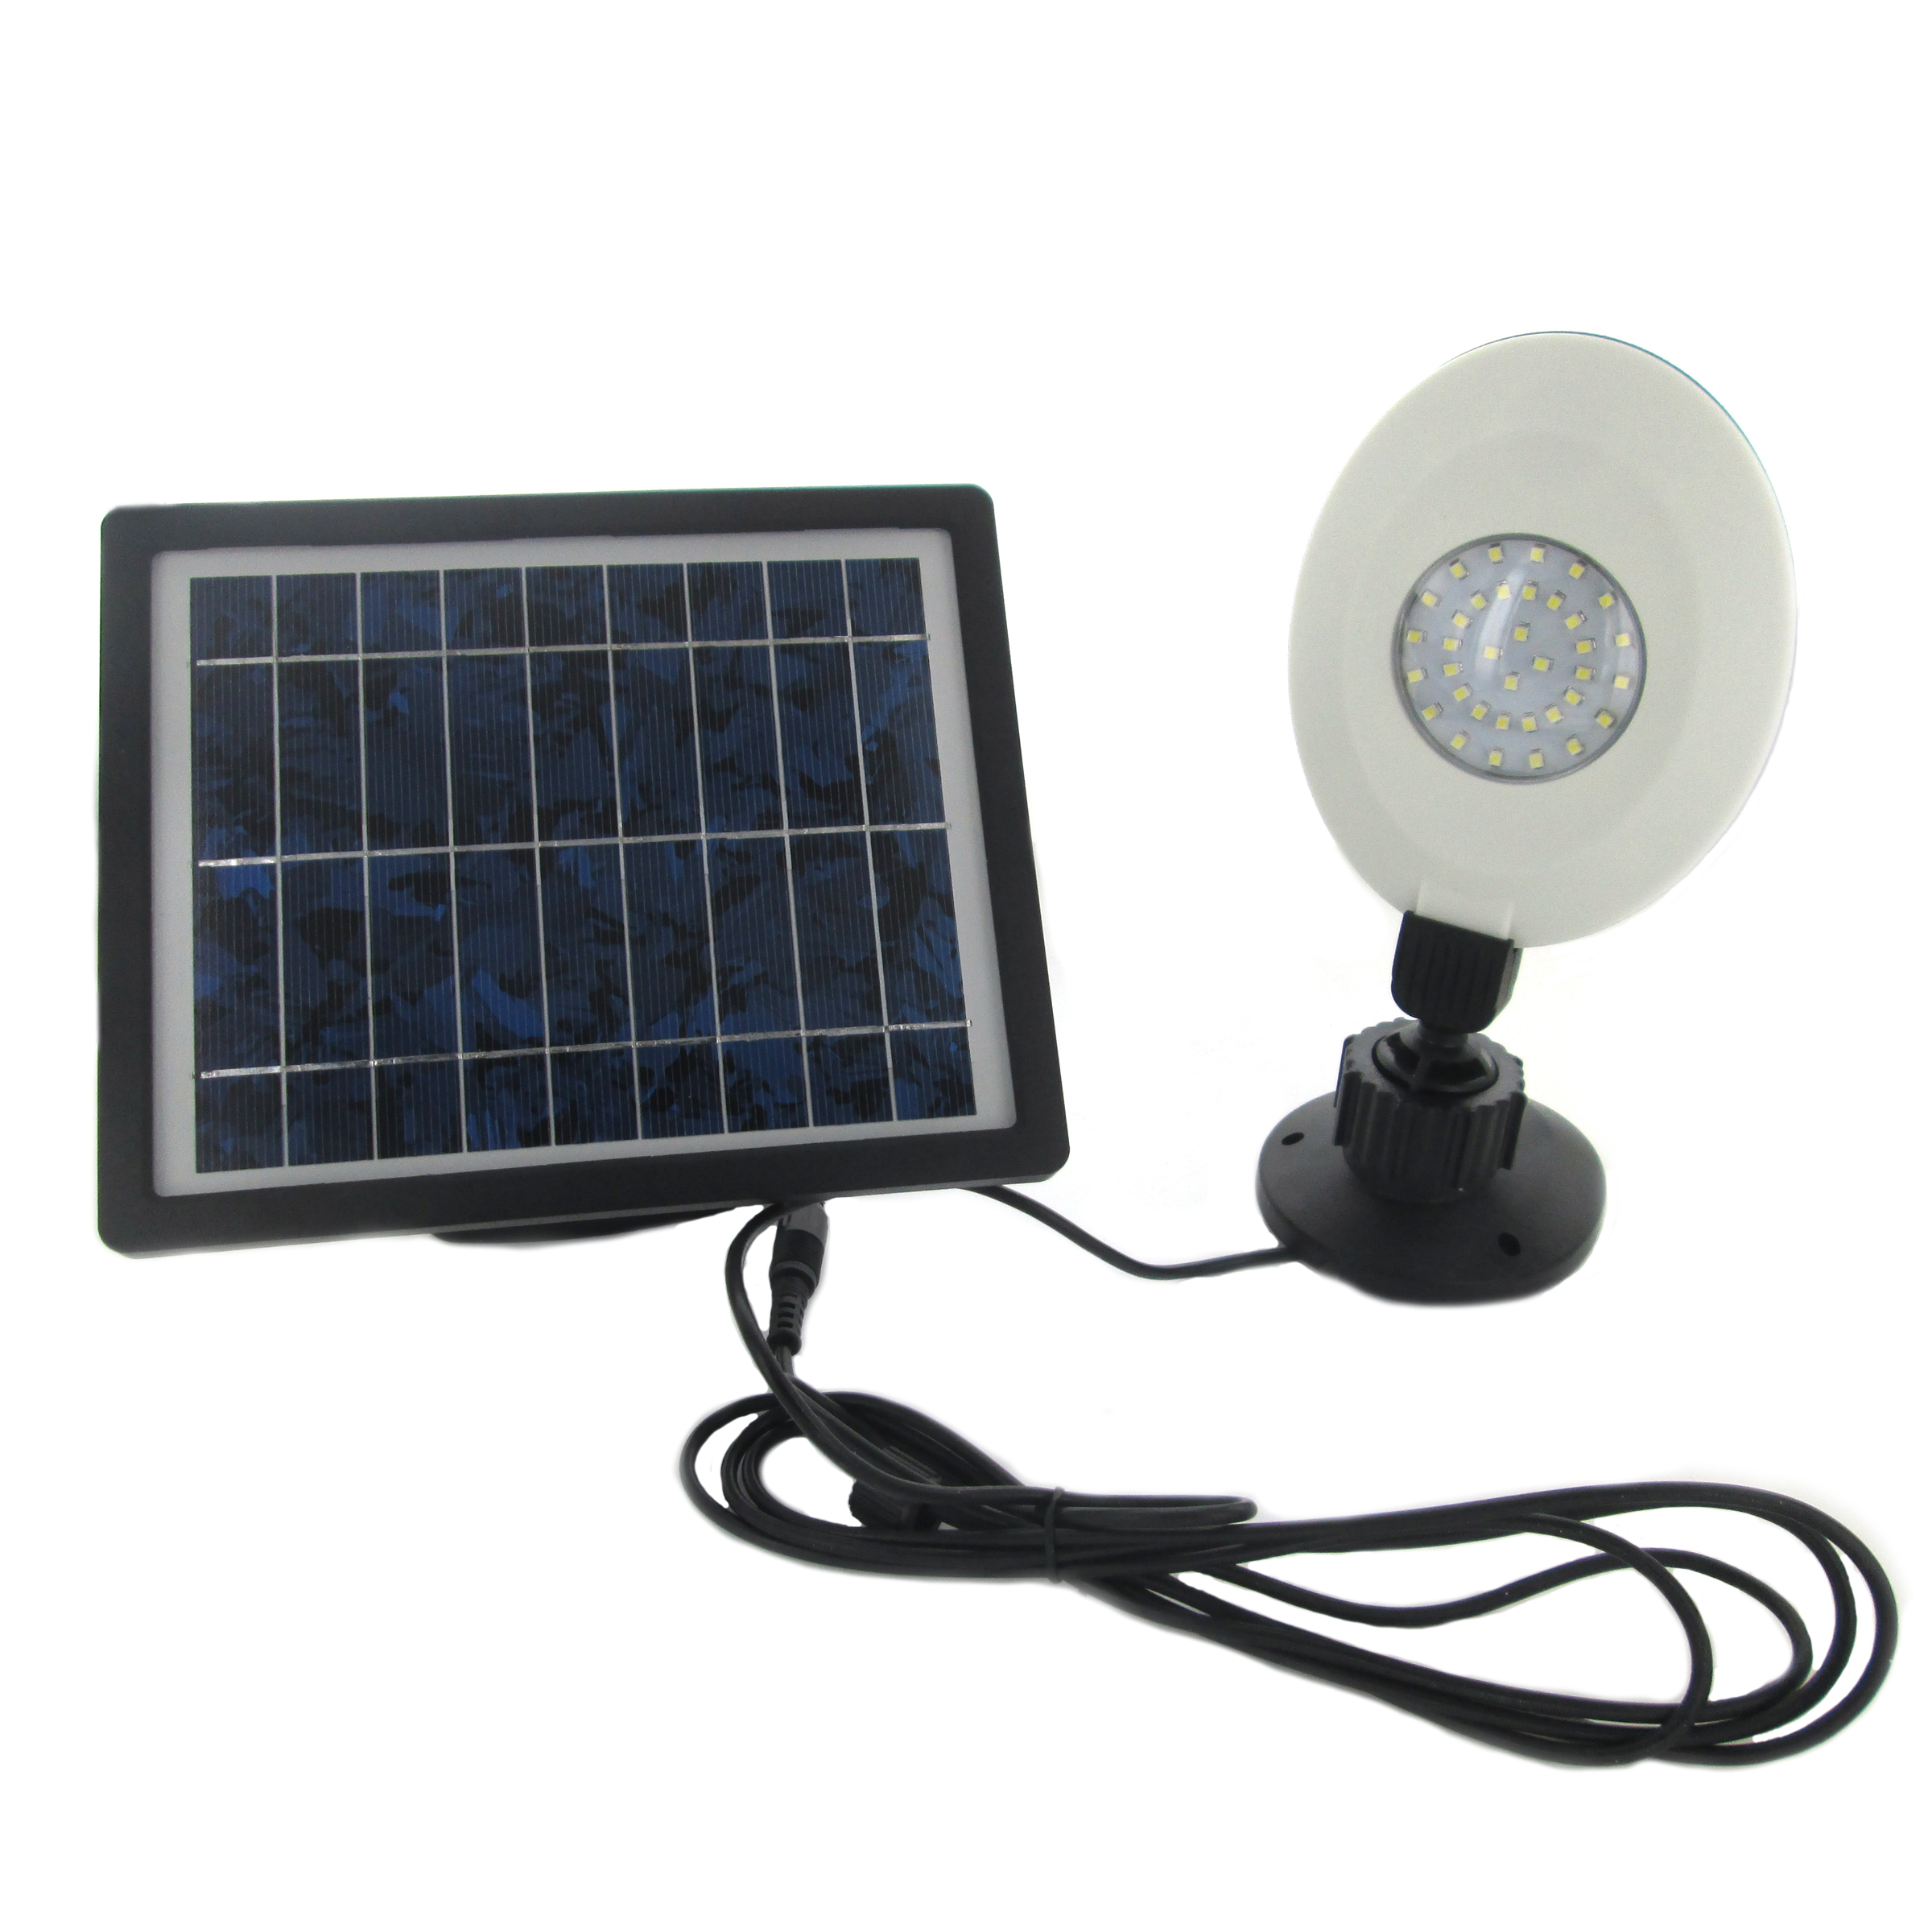 Reusable Revolution Solar Powered 36 LED Rechargeable Wall Mounted Flood Light at Sears.com